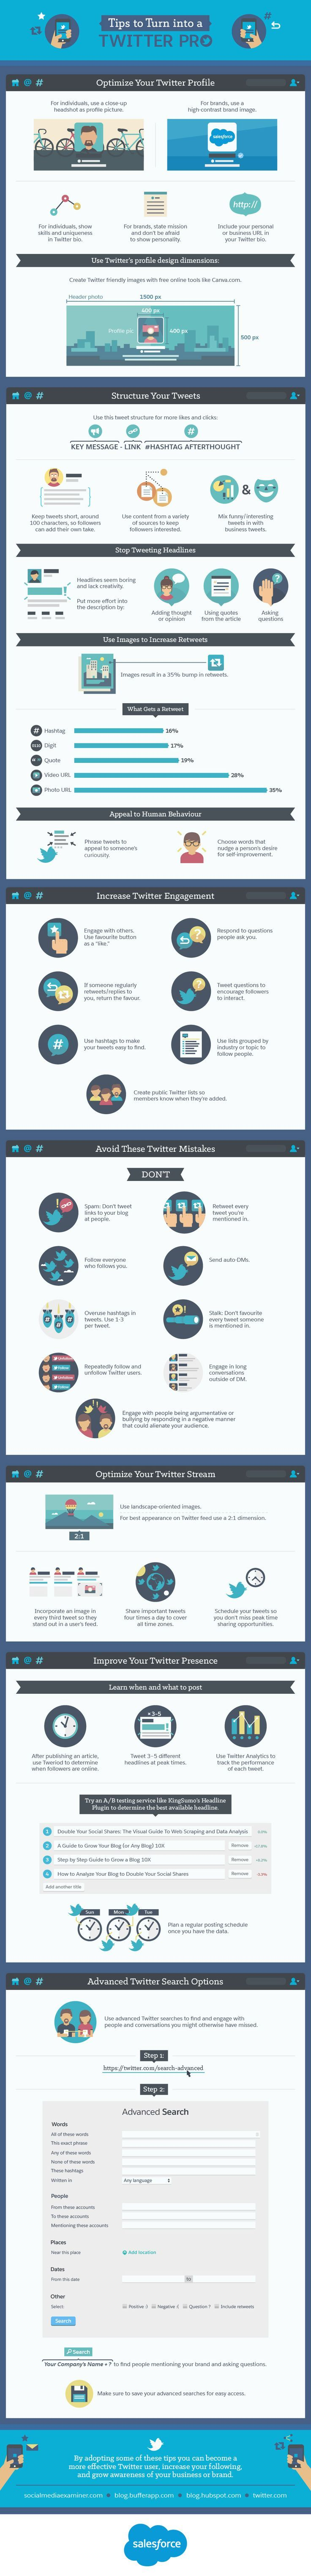 Tips to Turn Into a Twitter Pro via @angela4design  #infographic #Twitter #SocialMedia